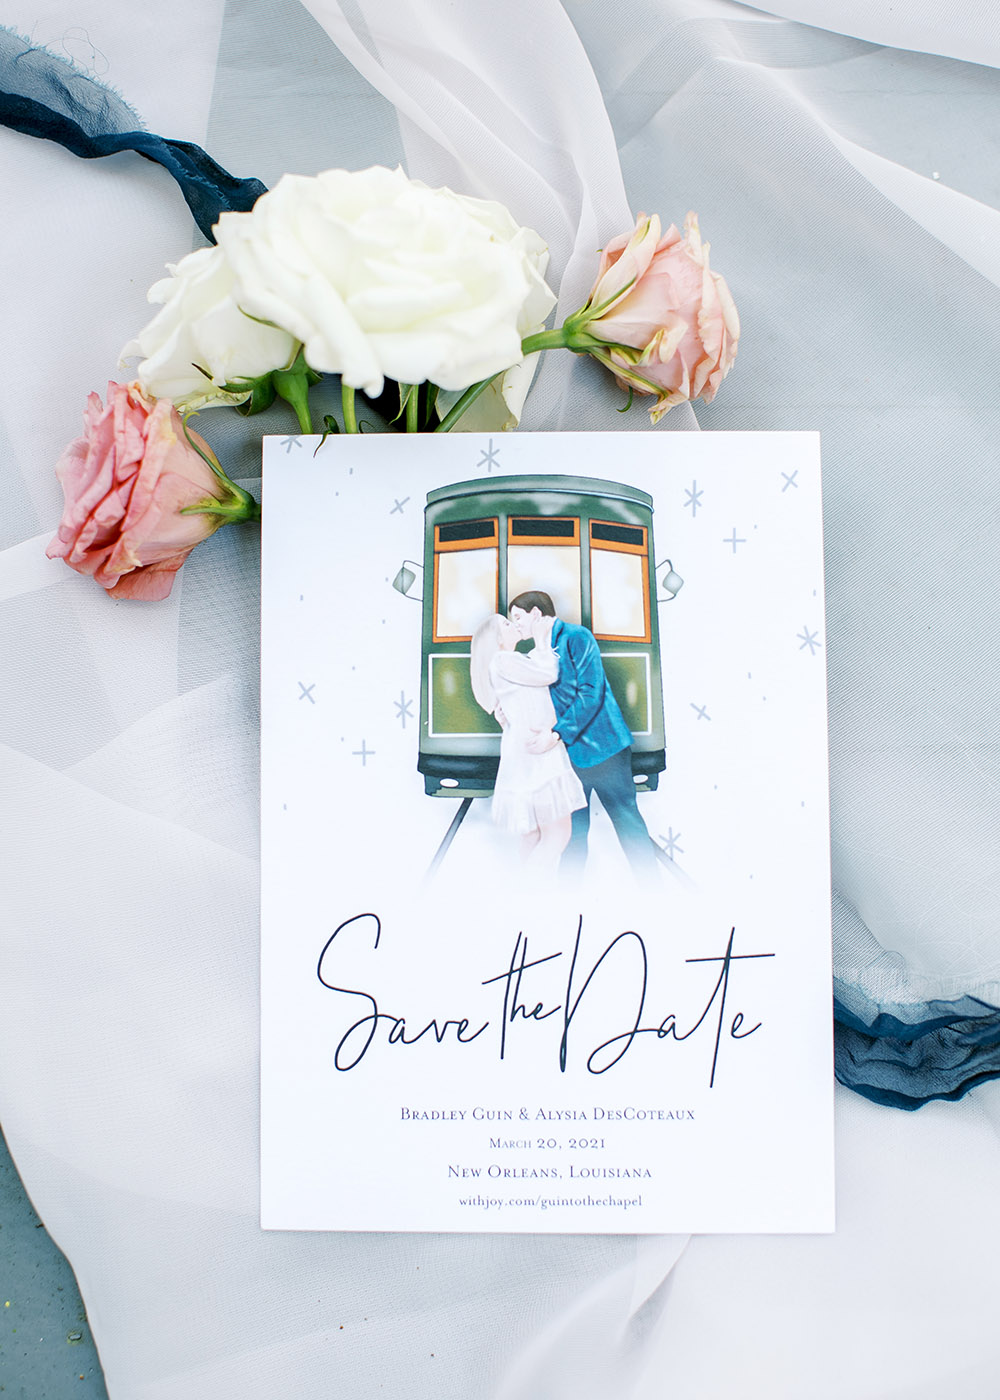 Alysia designed all the wedding graphics including the Save the Date cards